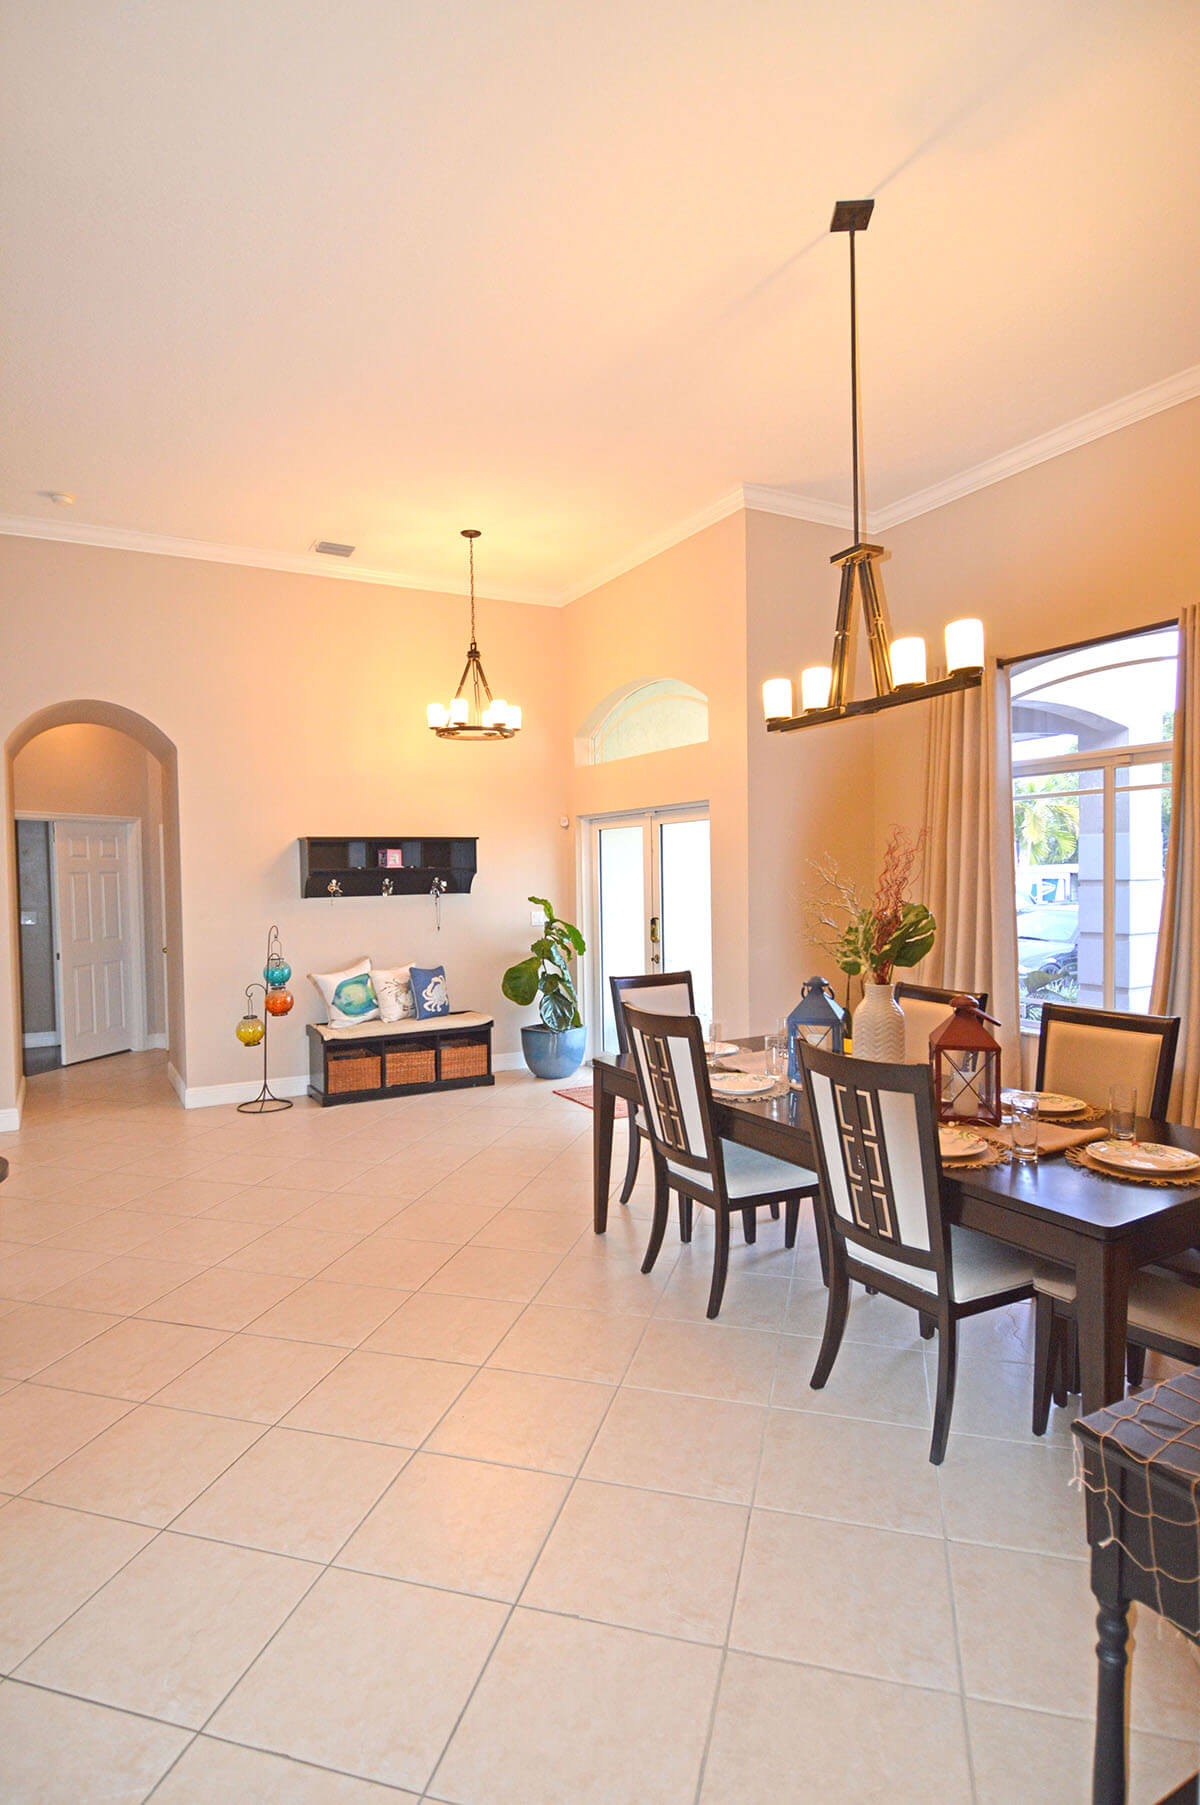 13133-SW-213-Ter-Miami-FL-33177-11-Entrance-Dining-Room.jpg